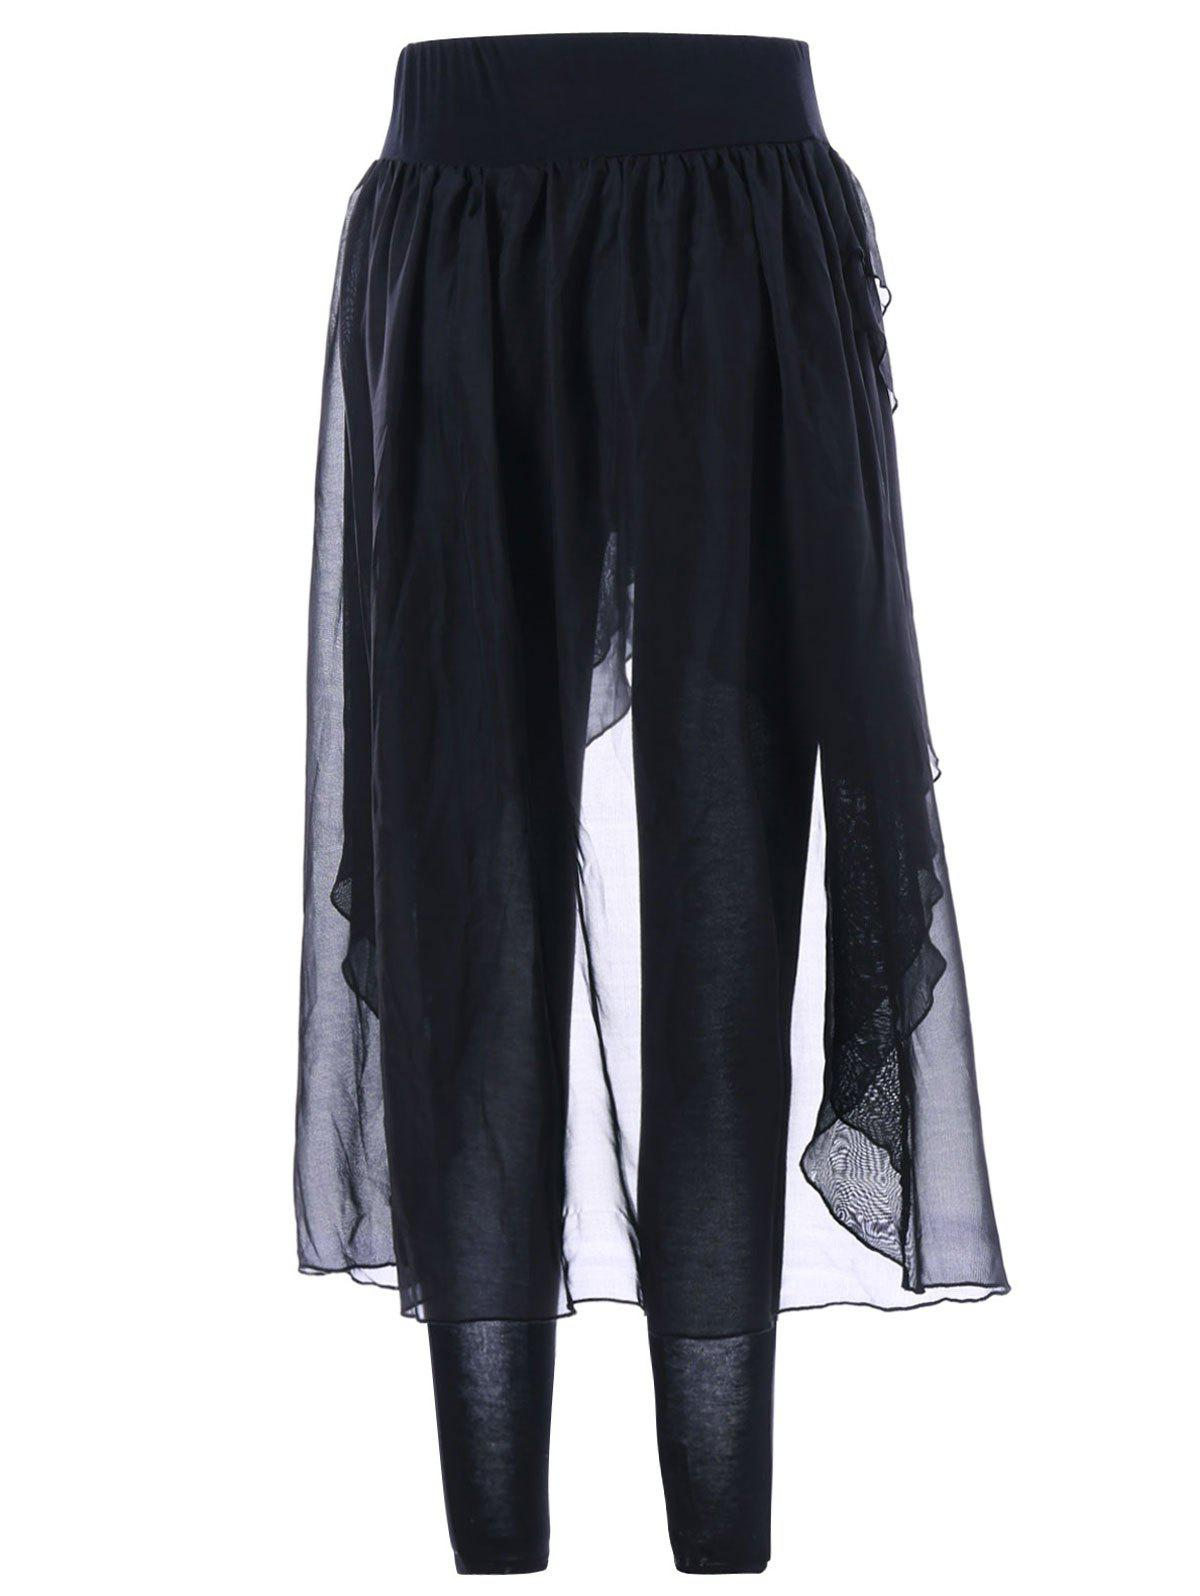 Irregular Chiffon Skirted Leggings - BLACK M